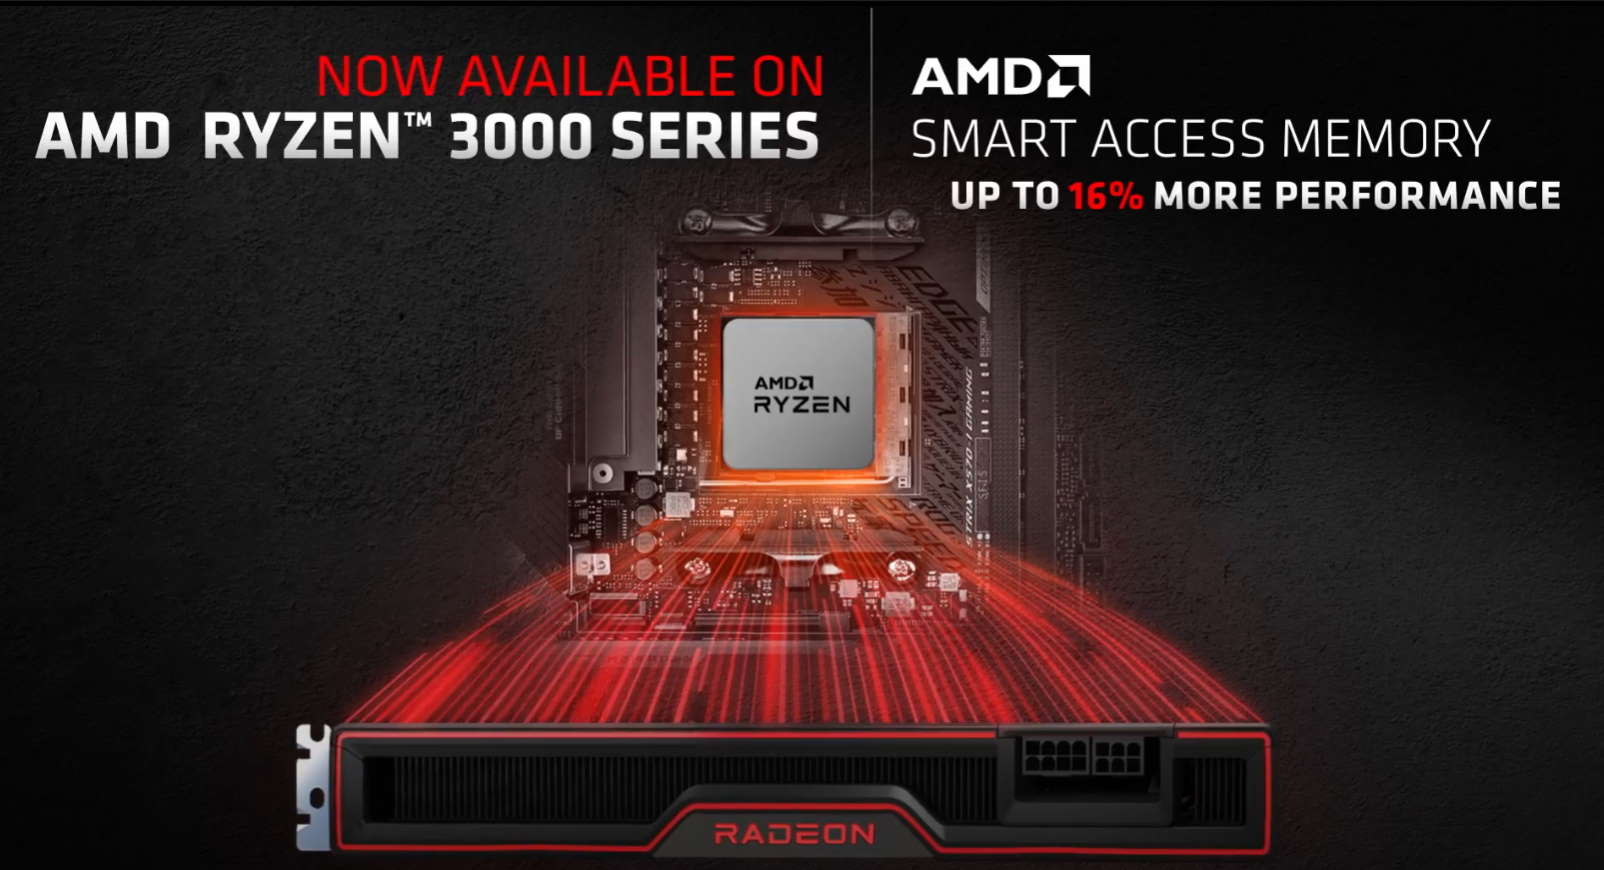 AMD Ryzen 3000 CPUs get go-ahead for performance boosting Smart Access Memory